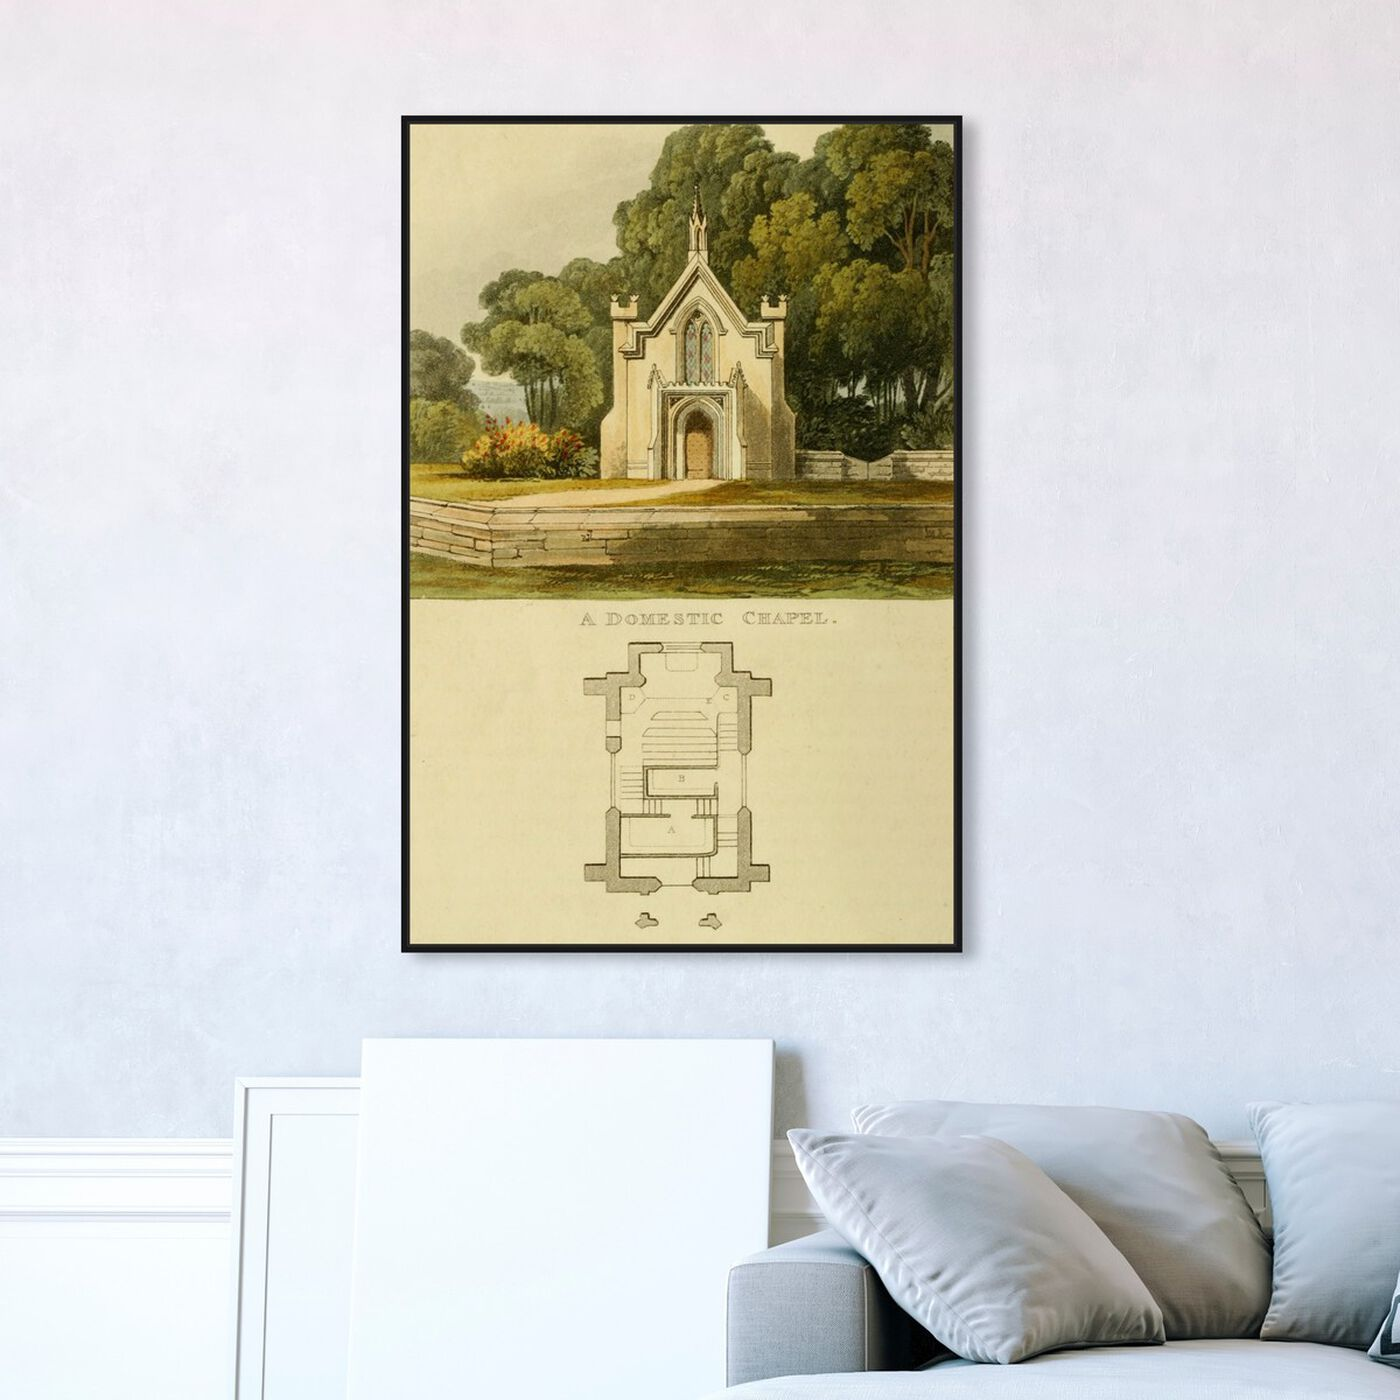 Hanging view of Domestic Chapel - The Art Cabinet featuring classic and figurative and classic art.